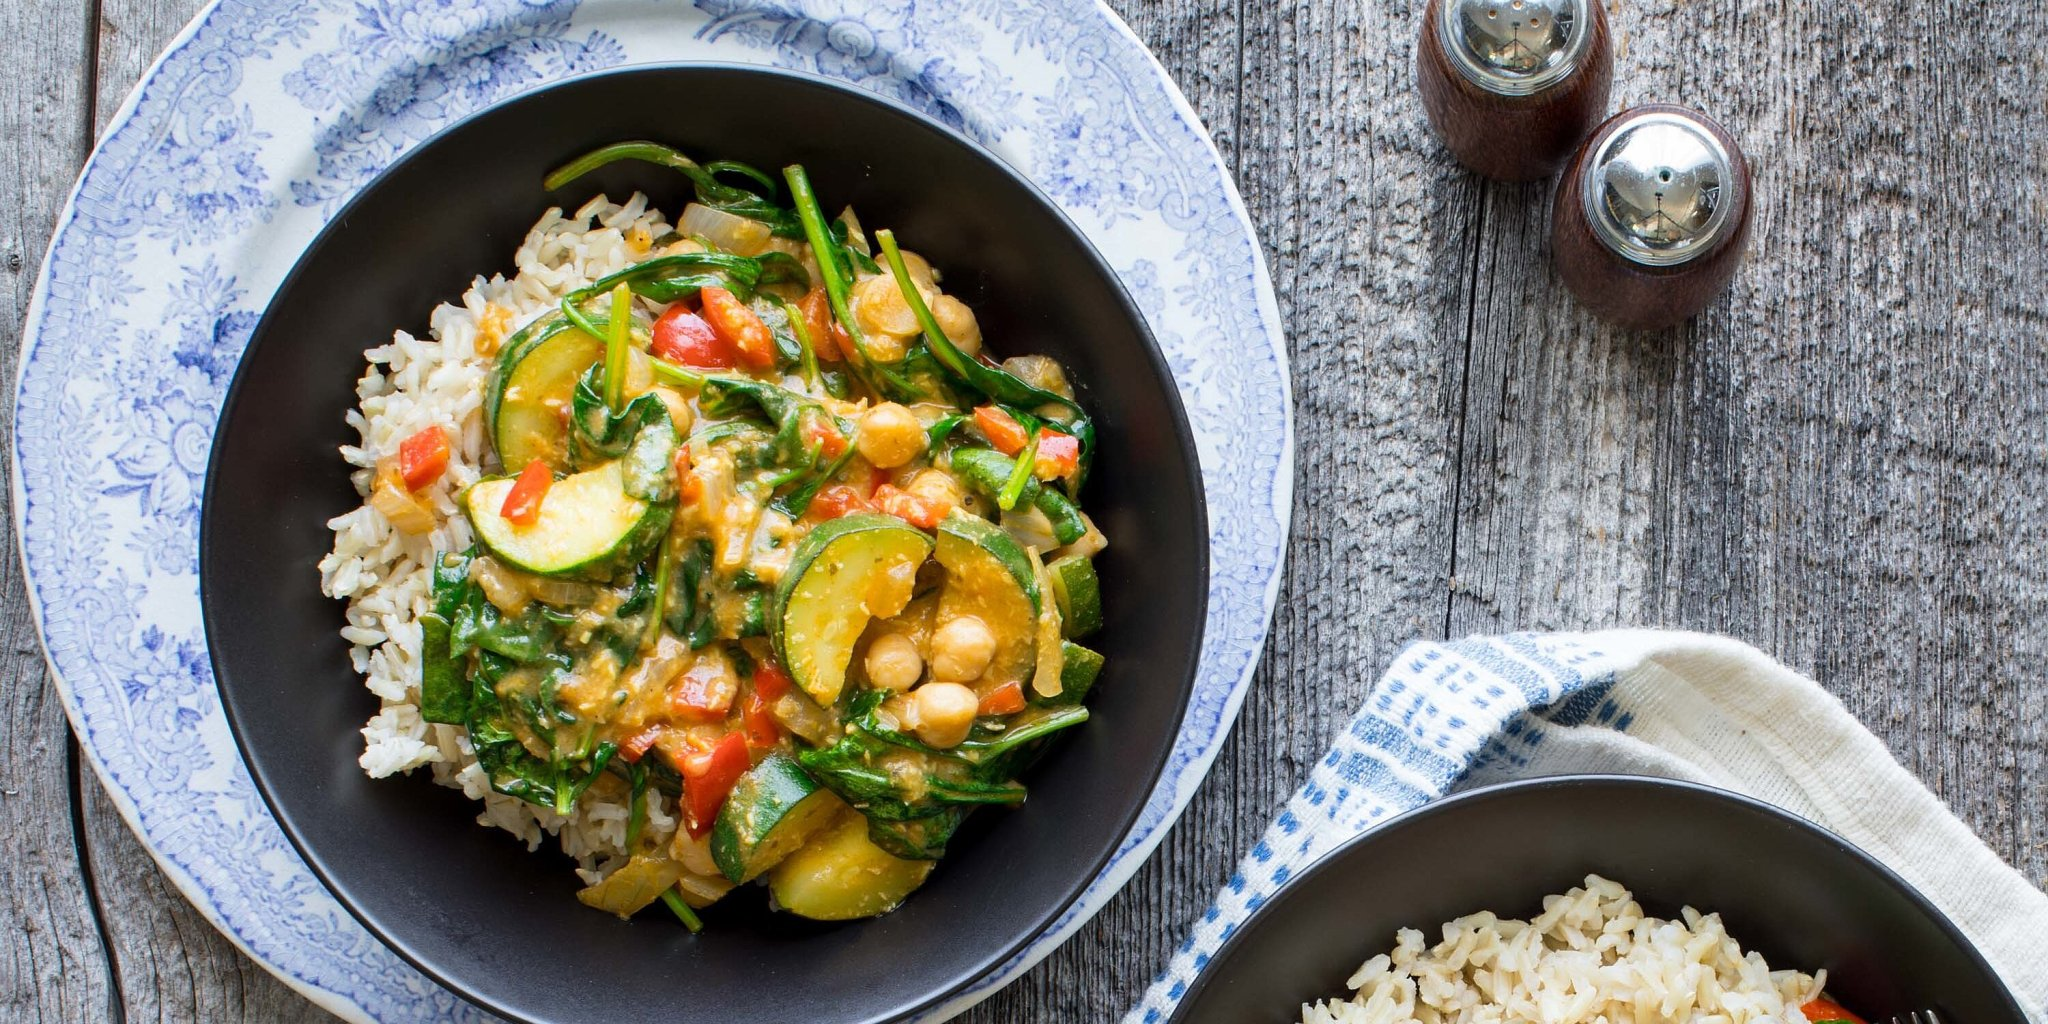 20 One-Pot Dinners You'll Want to Make Forever